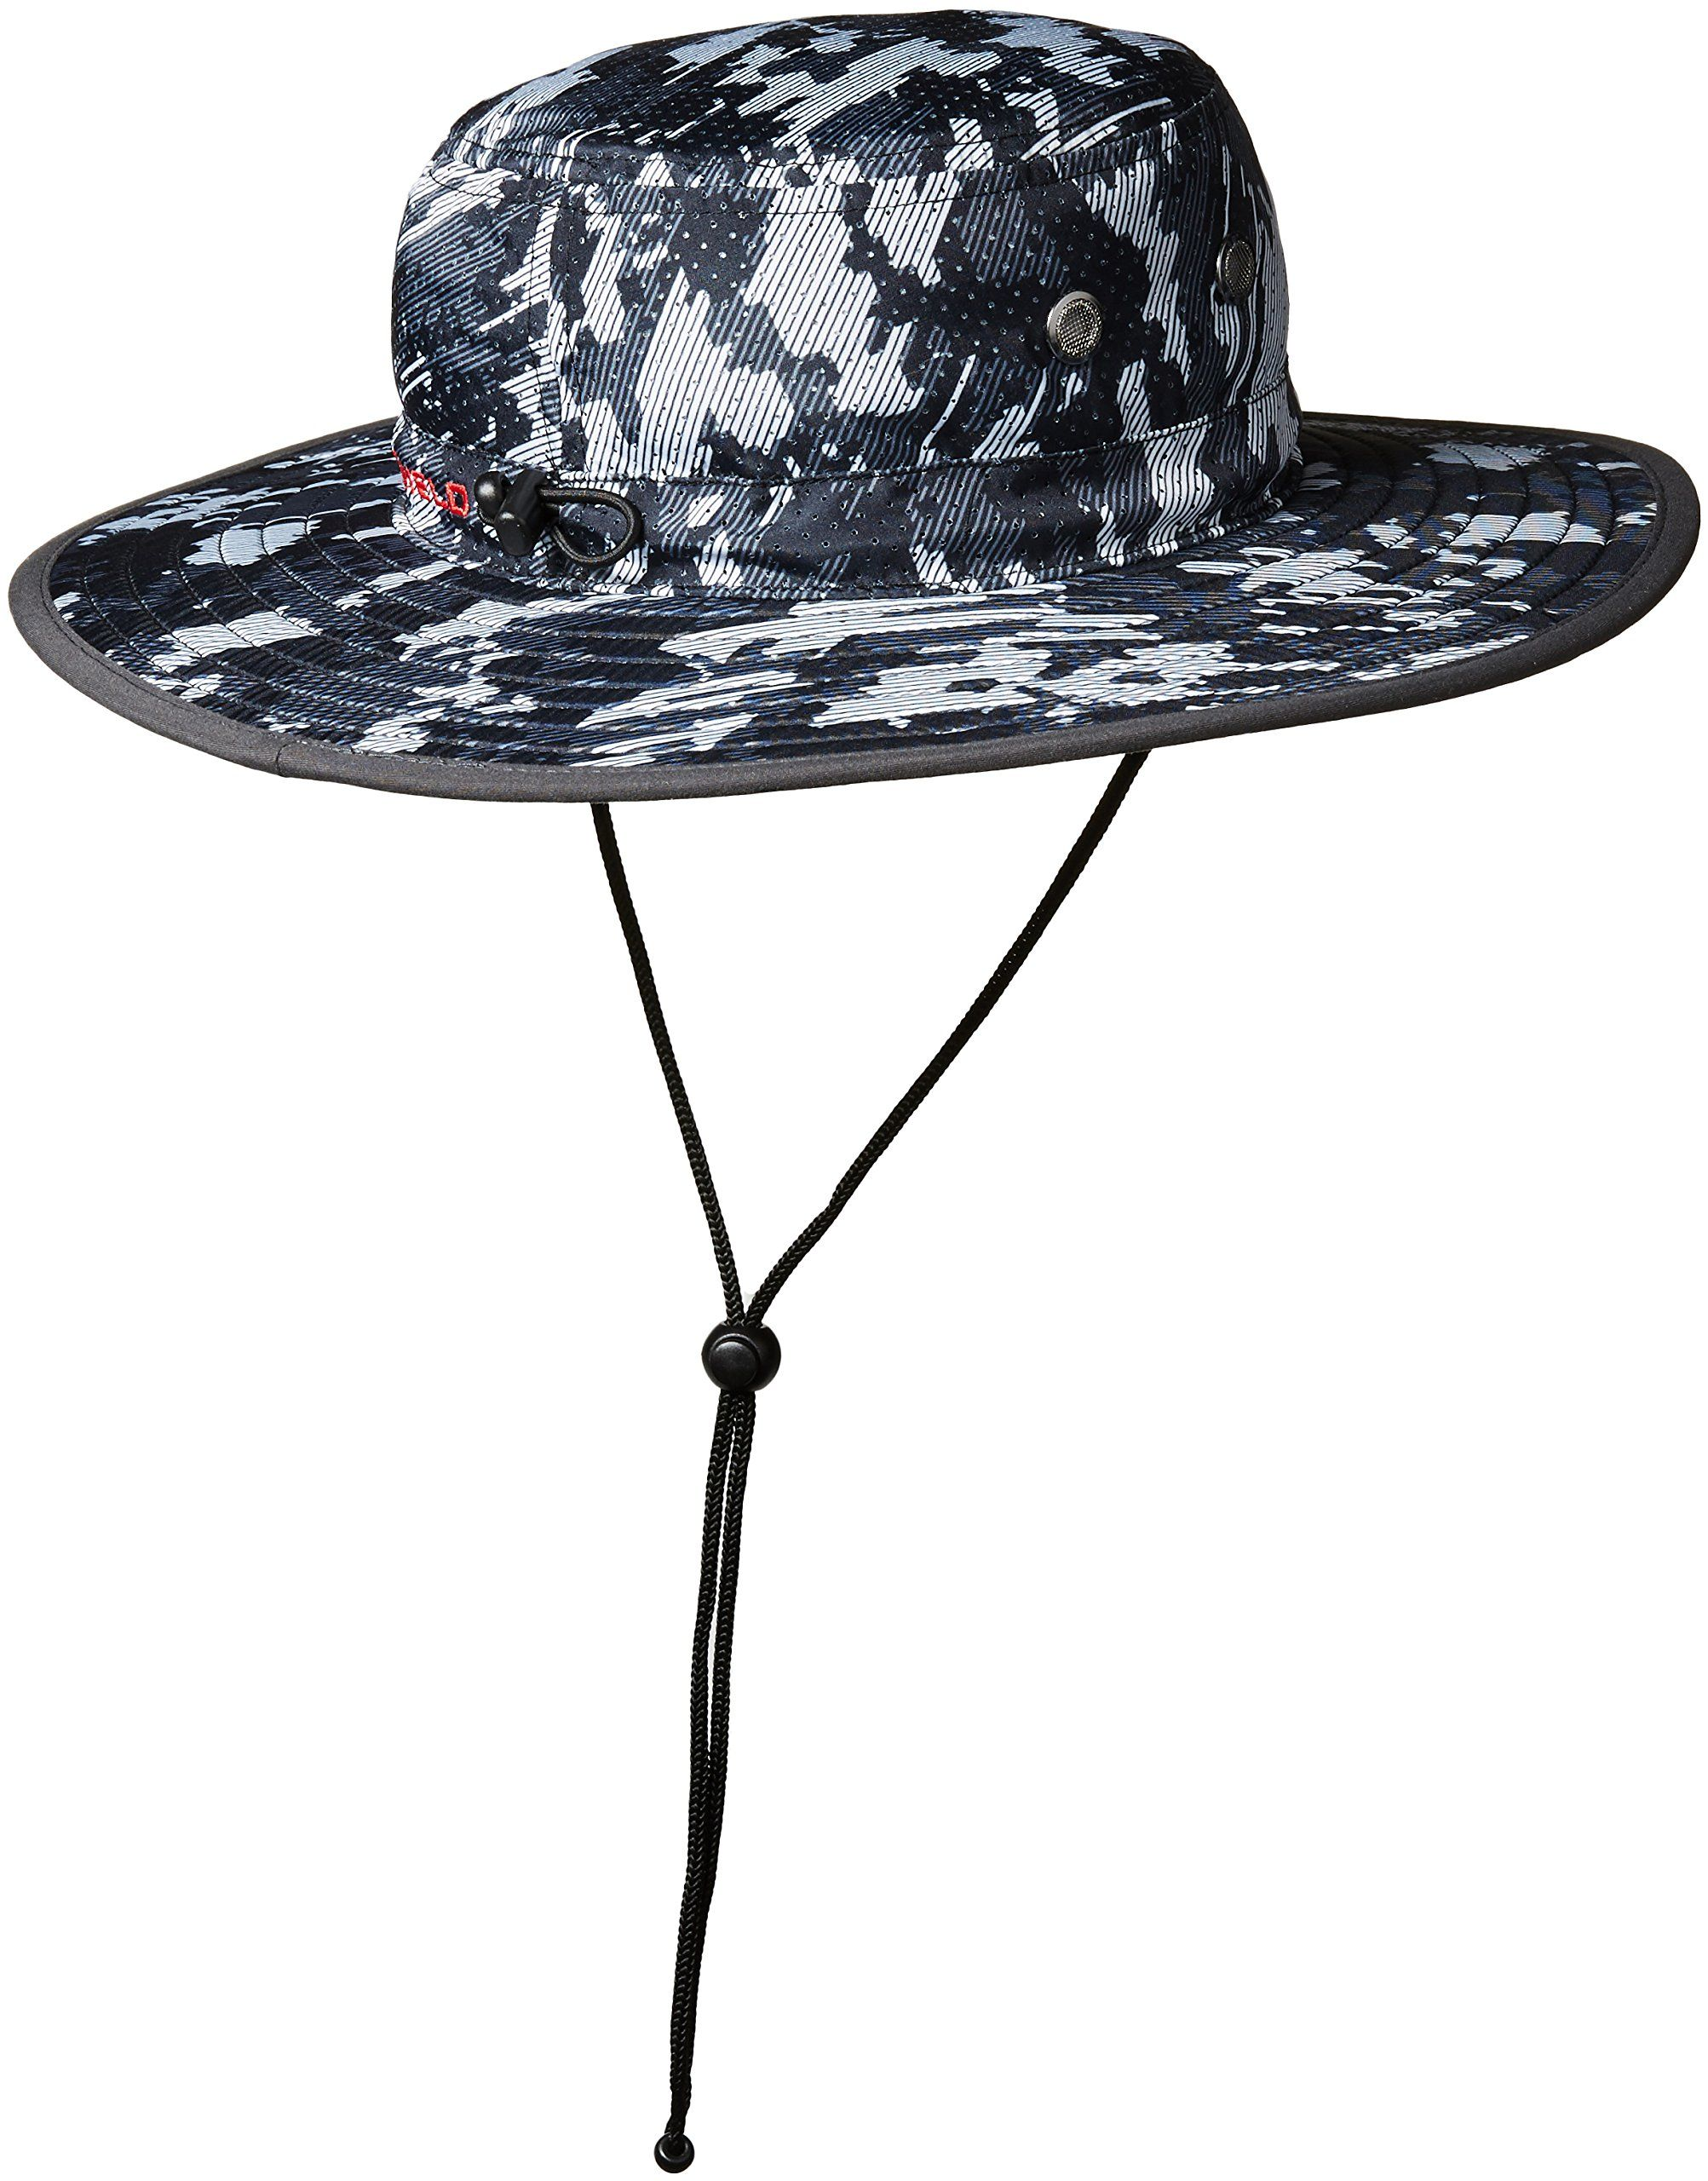 100% top quality hot new products details for Men Golf Clothing - EvoShield Logo Bucket Hat Camo One Size Fits ...